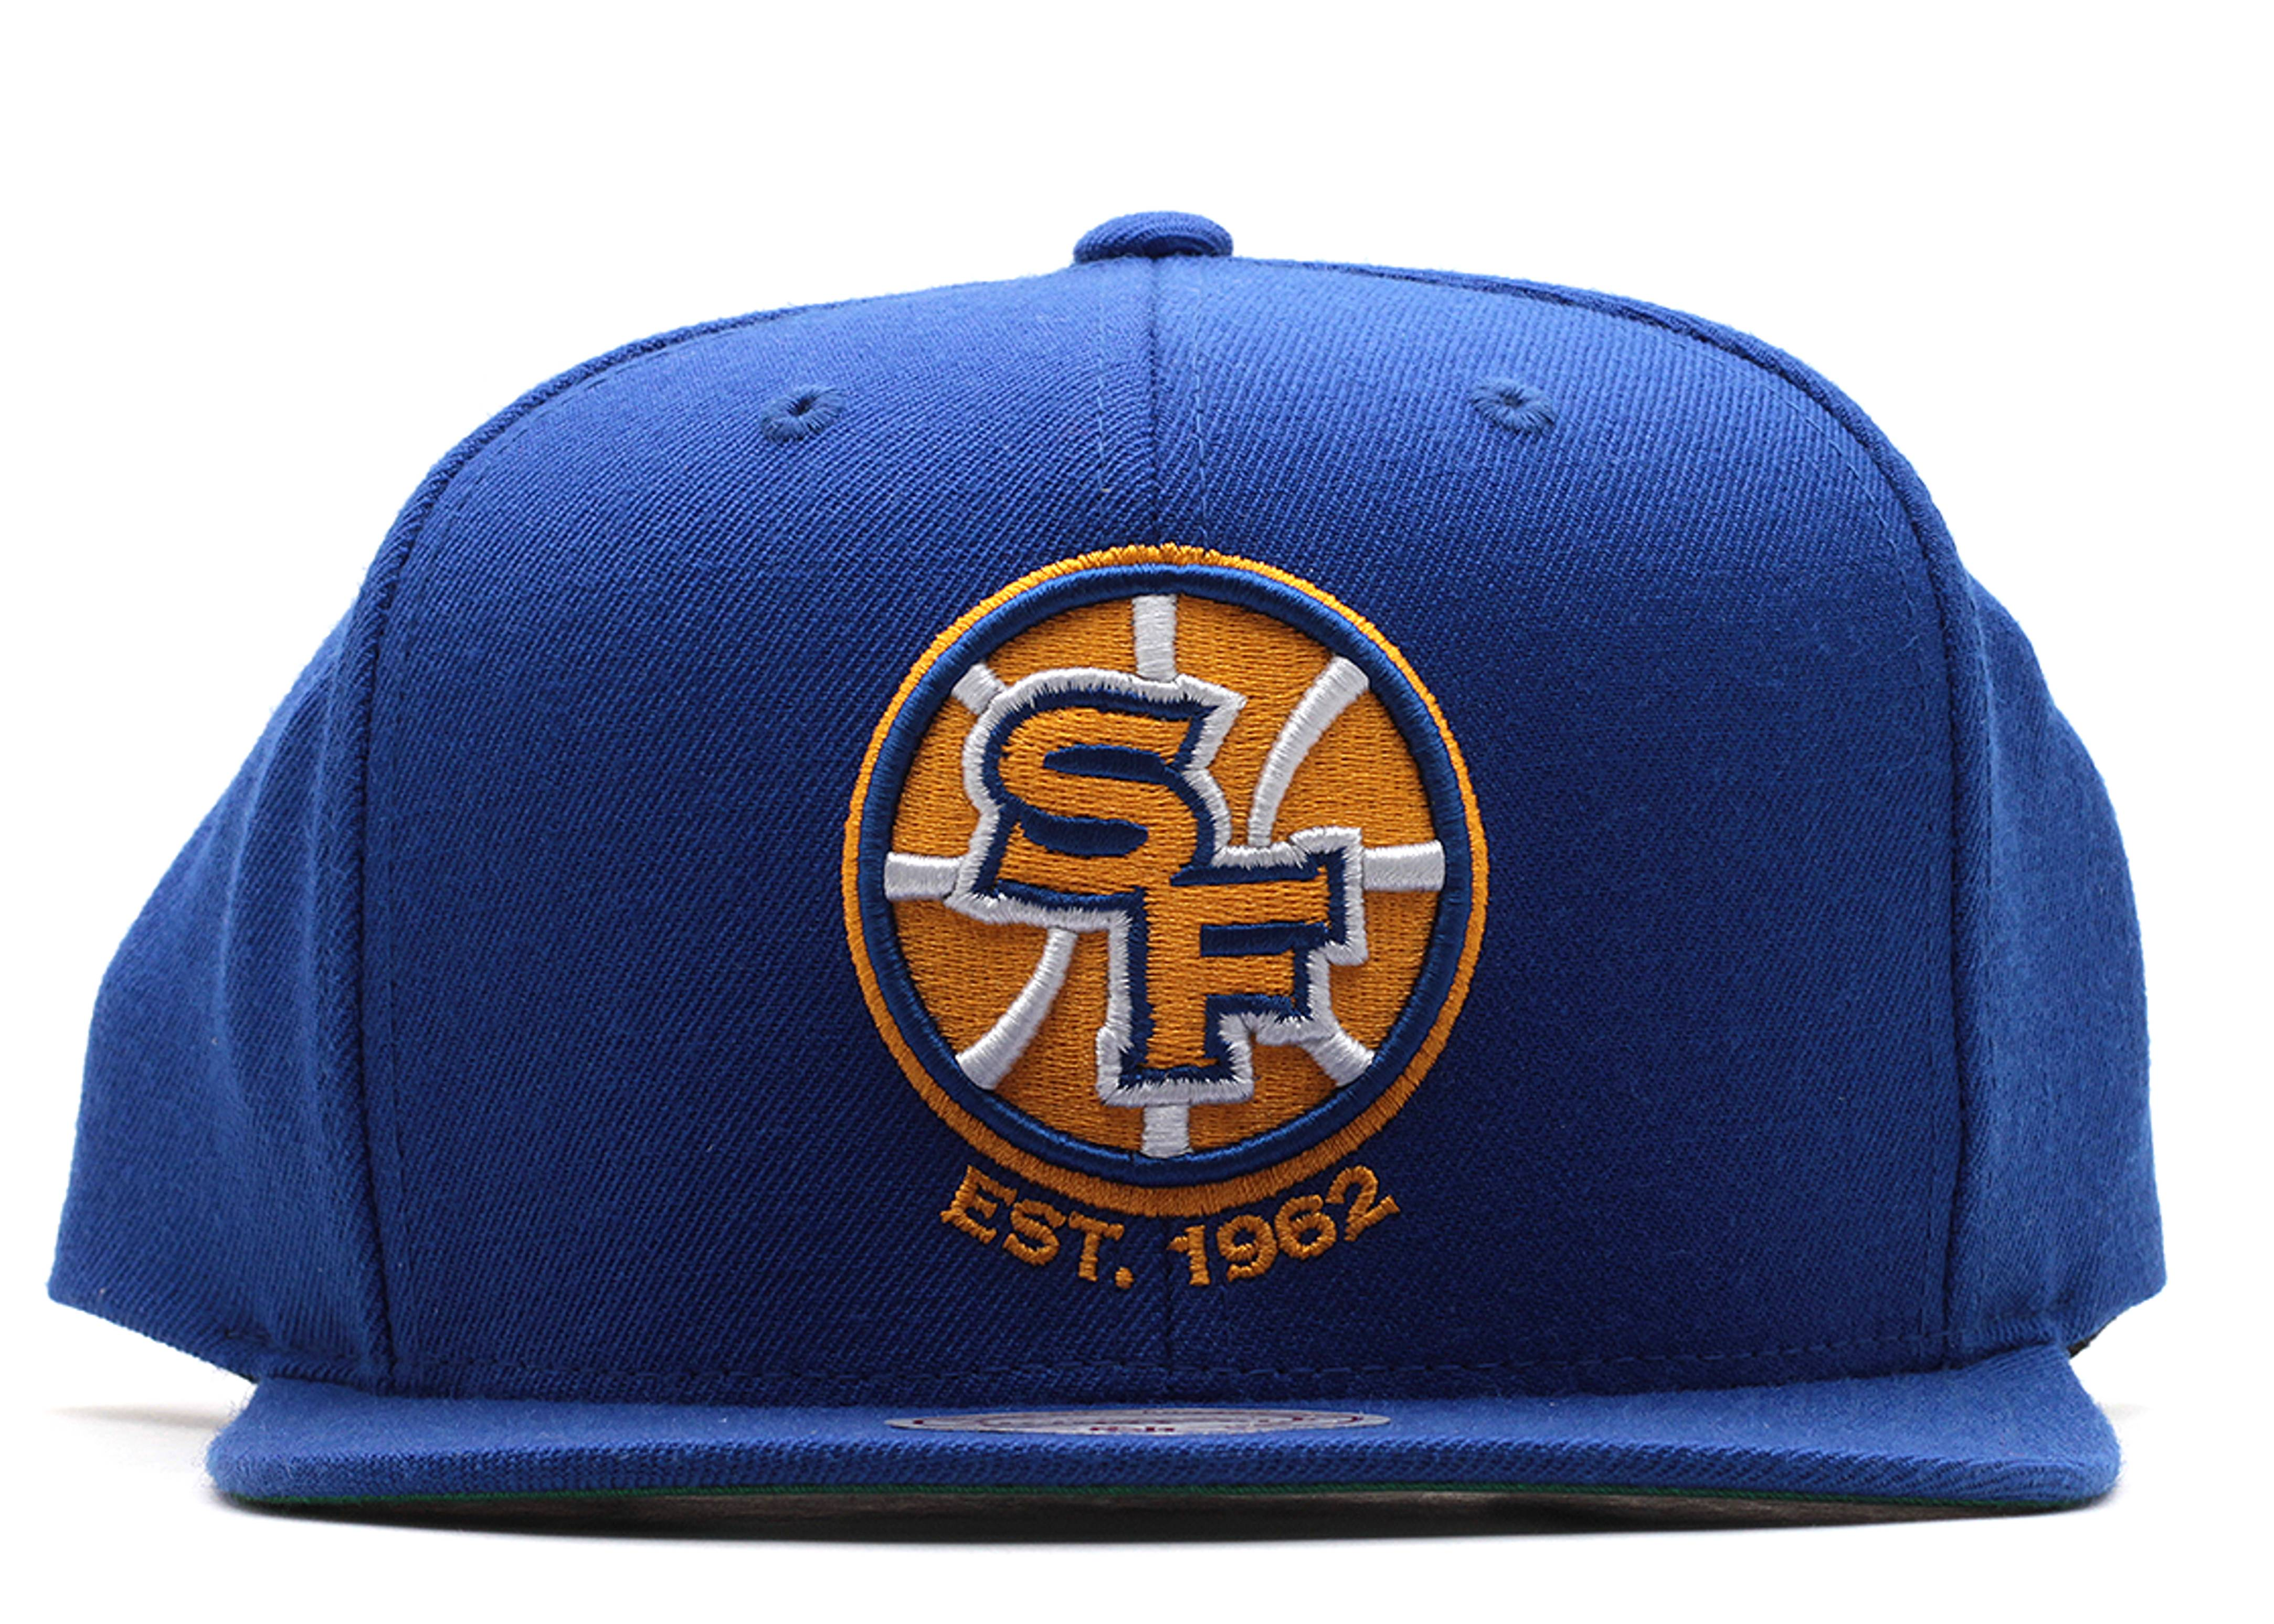 san francisco warriors snap-back